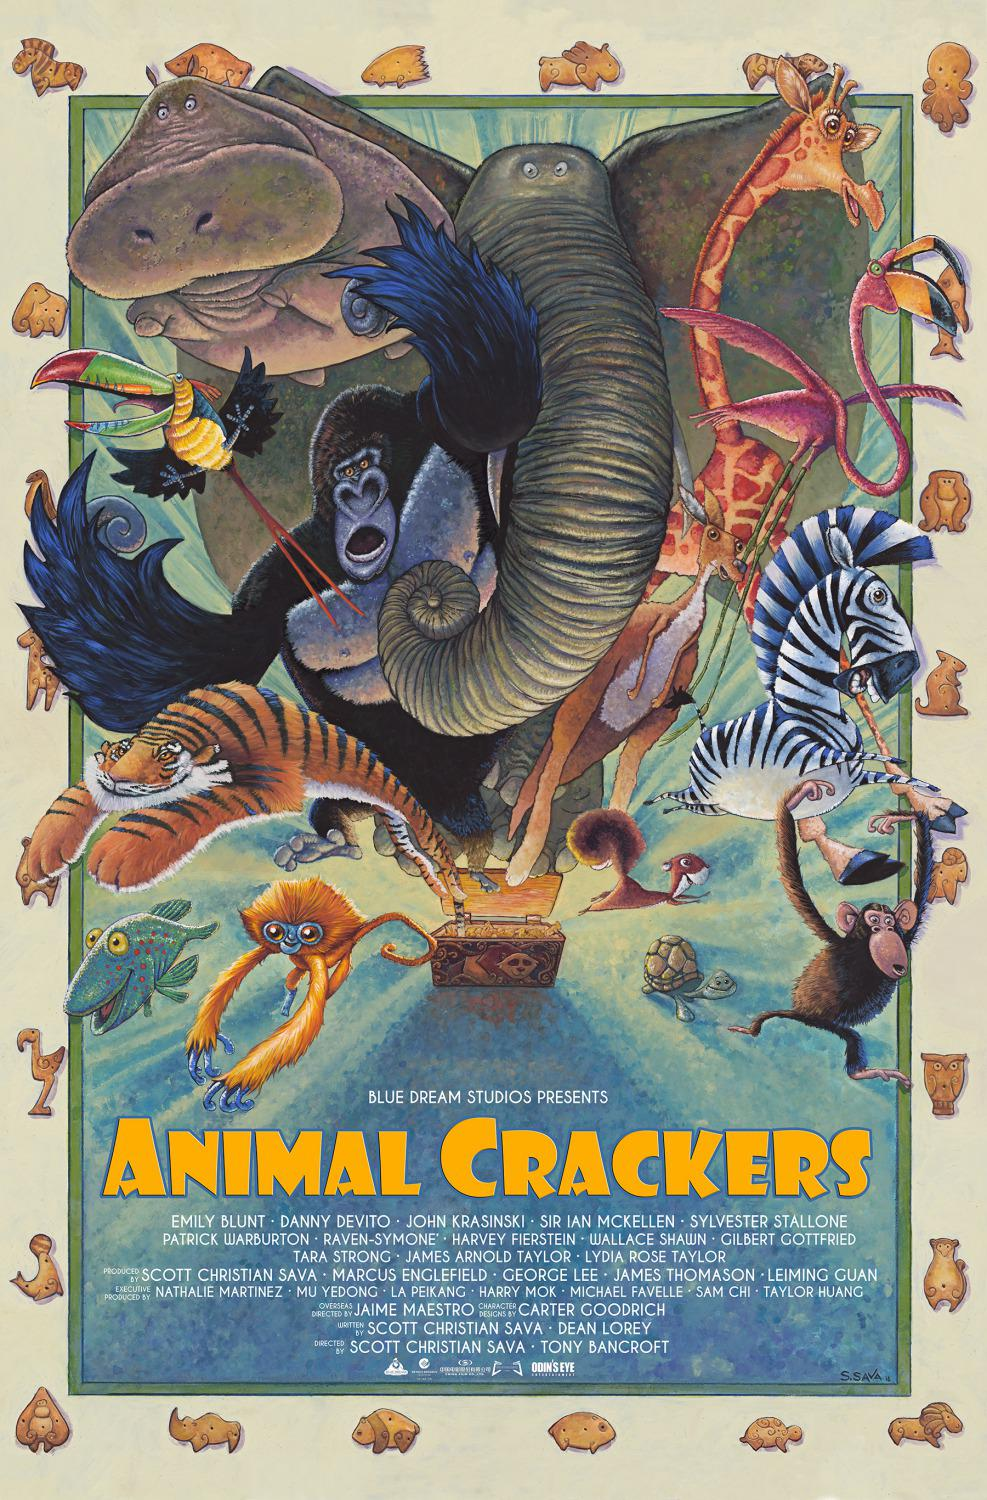 film - Animal Crackers - poster - Are You what You Eat